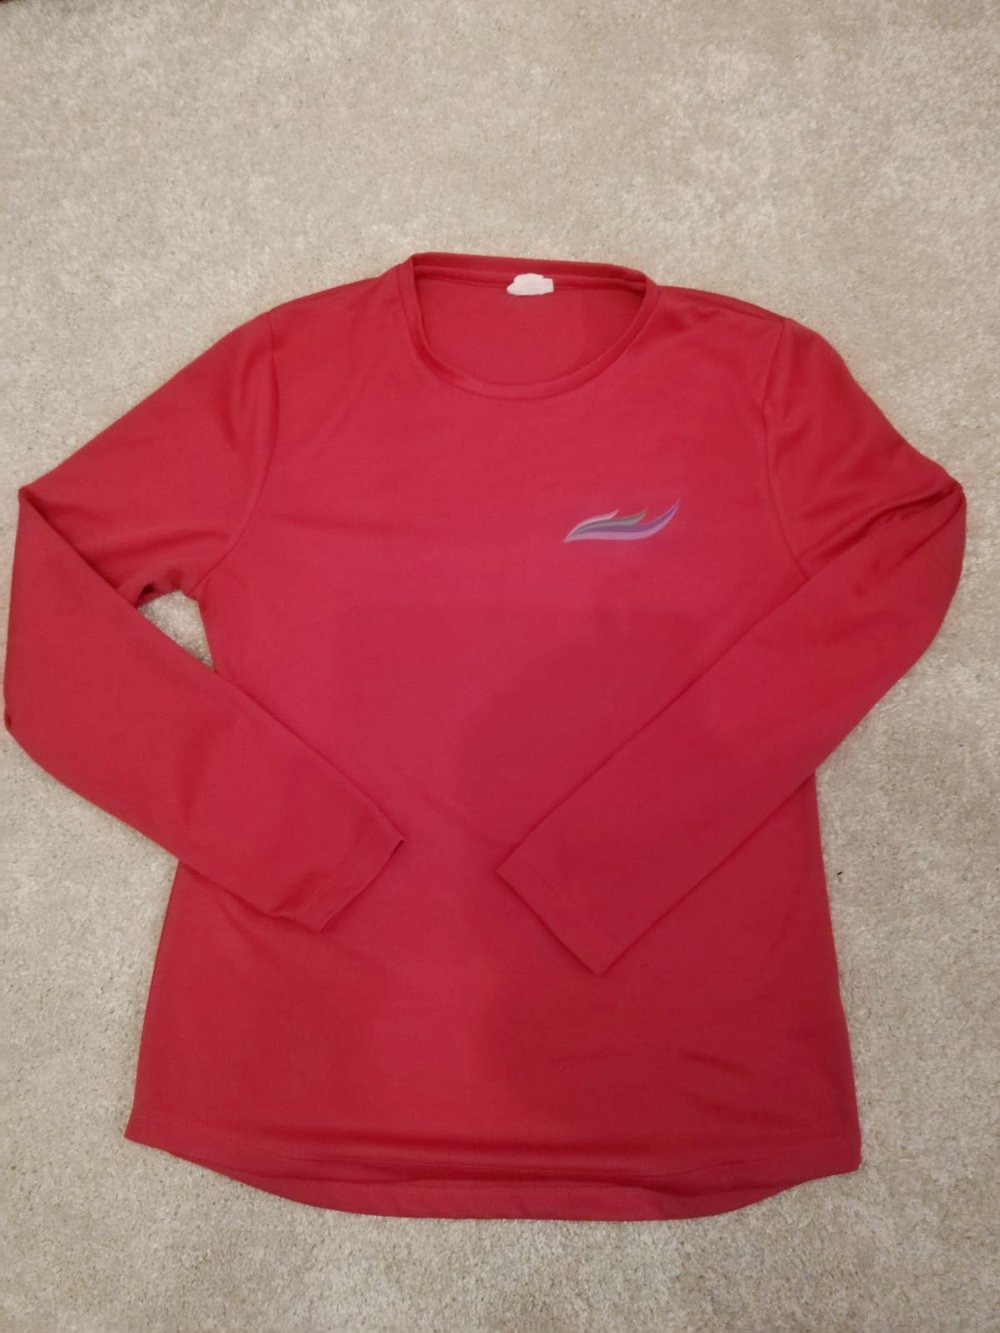 LONg sleeve t-shirt   Now the weather is getting colder, you may prefer to run in a long sleeve top. We suggest layers is the way forward for coping with the cold. Sizes small to X-Large   COST: £18